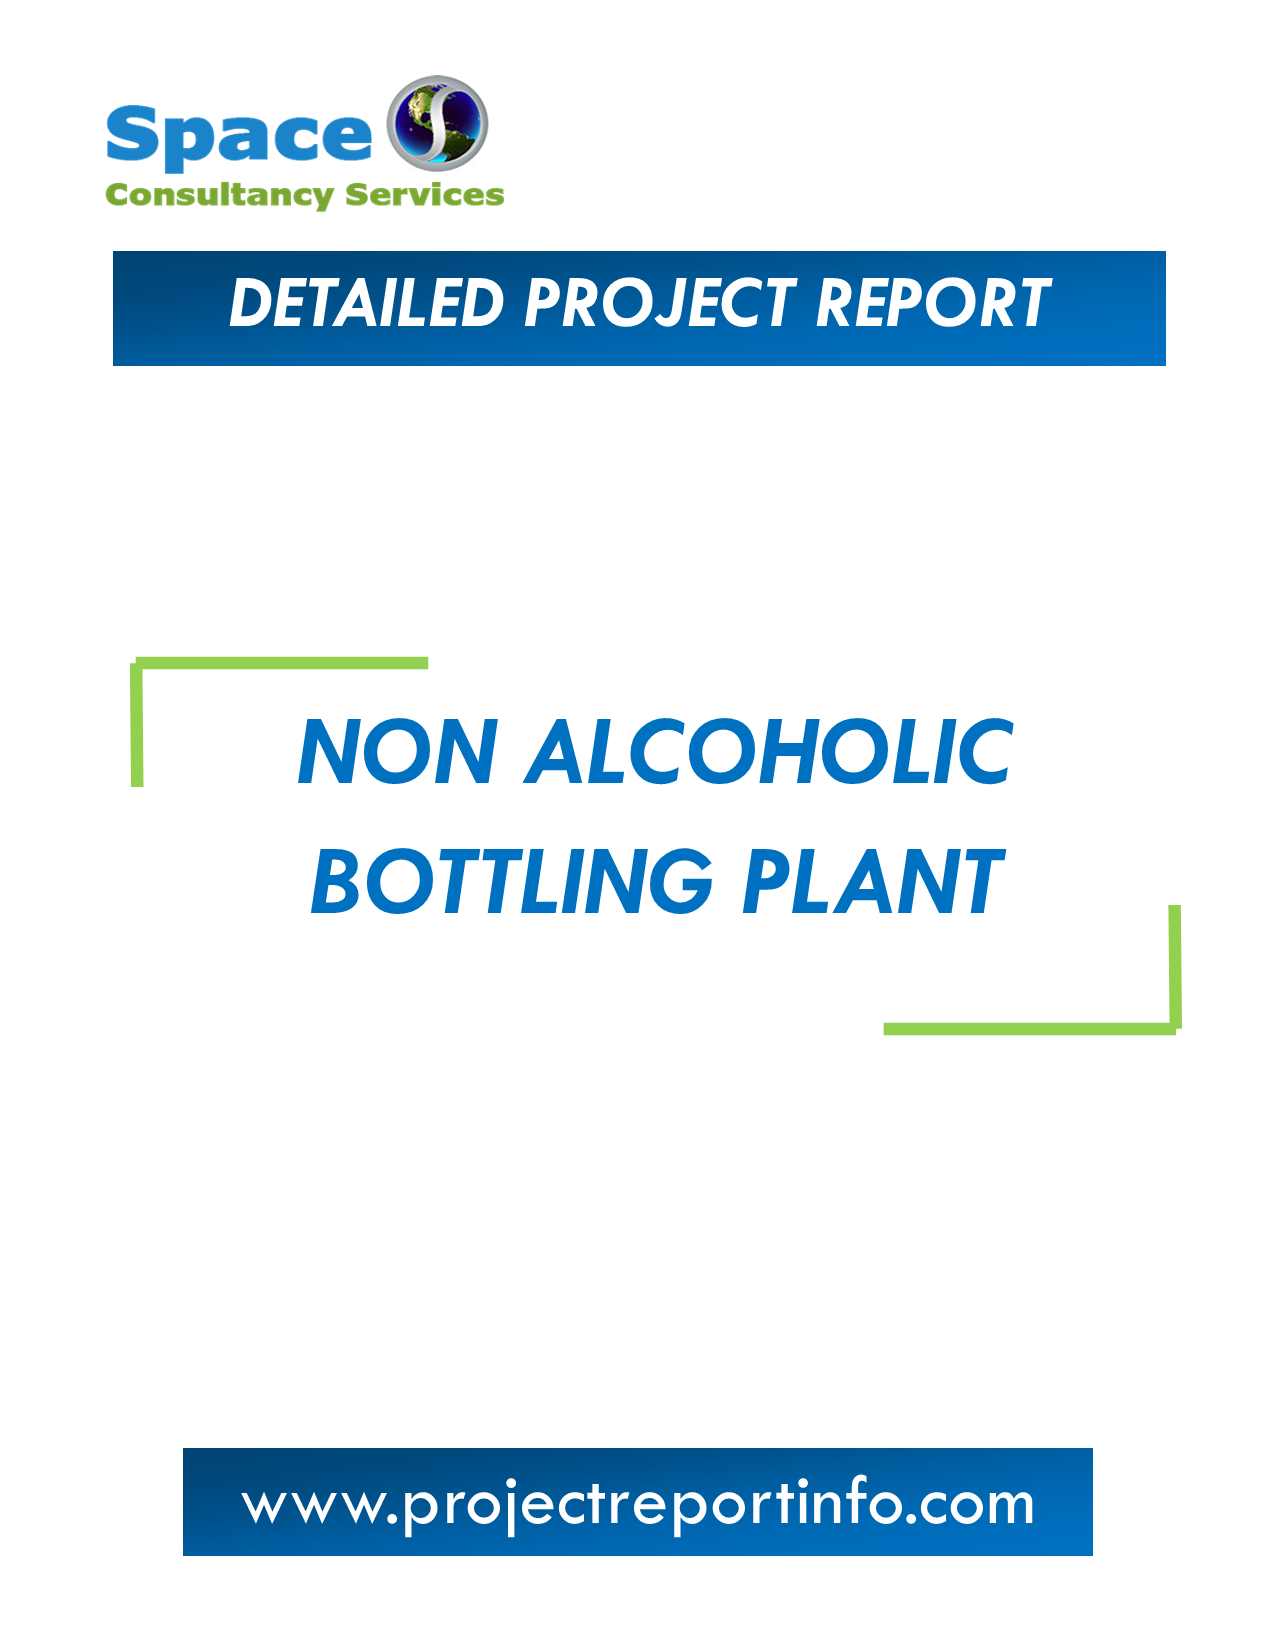 Project Report on Non Alcoholic Bottling Plant